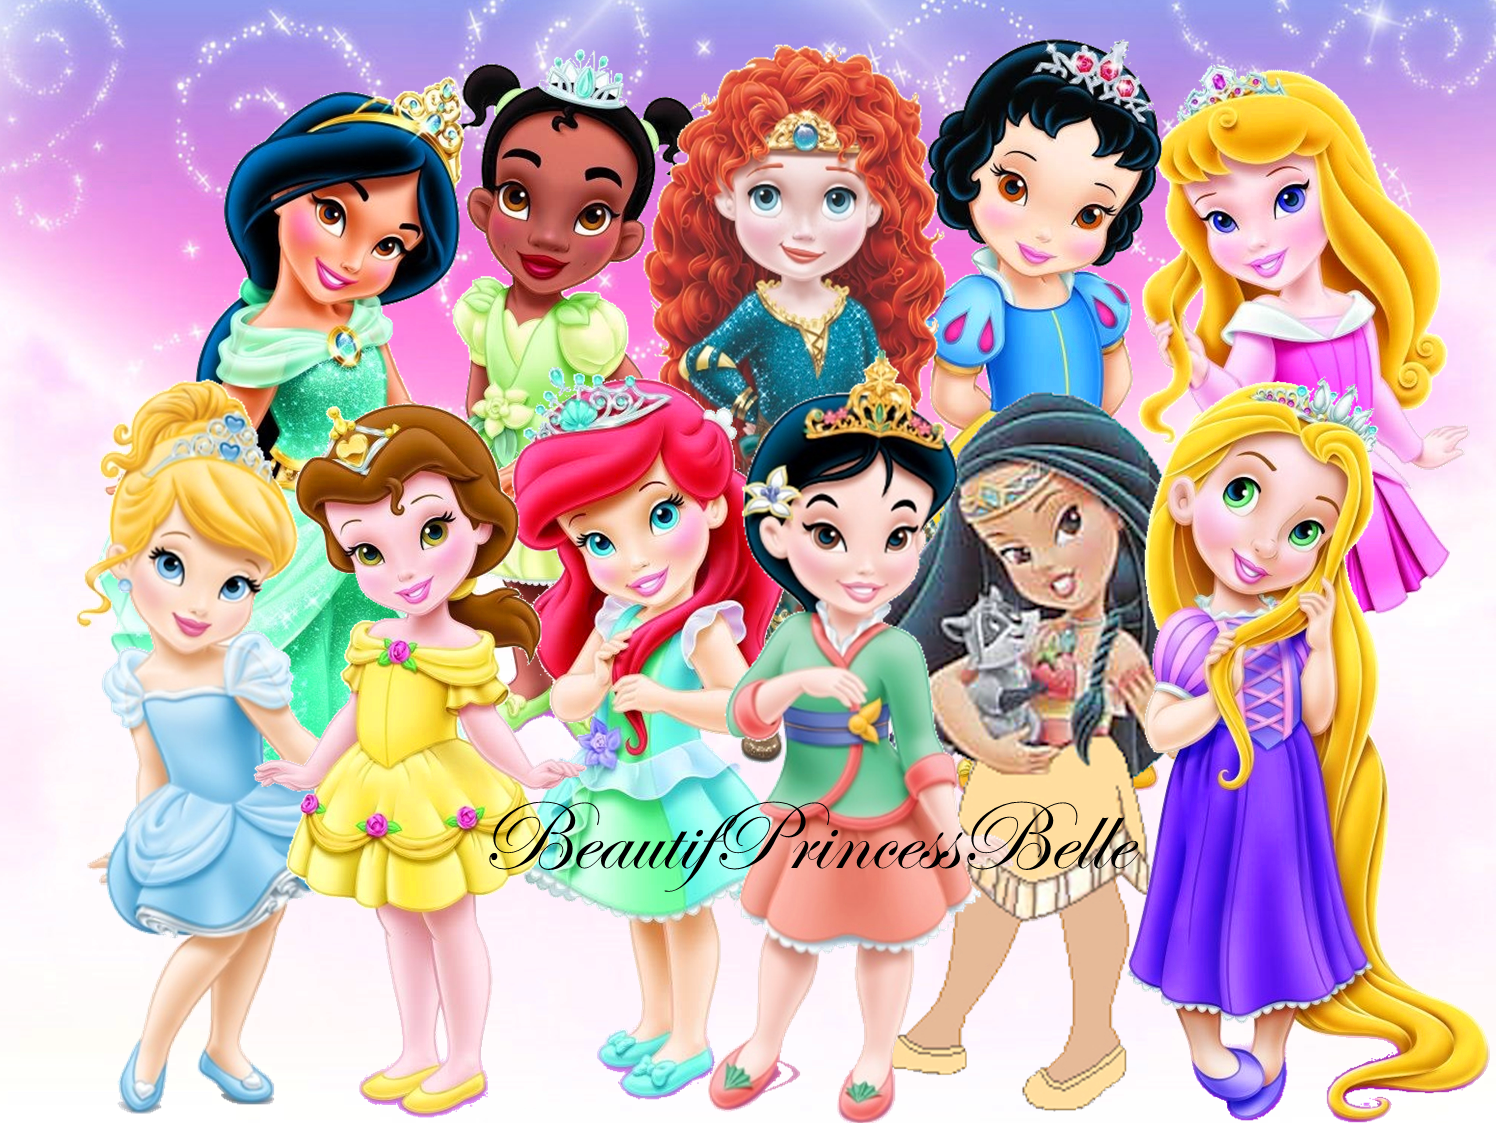 Disney Princess Images Royal Toddlers Hd Wallpaper And Background Photos